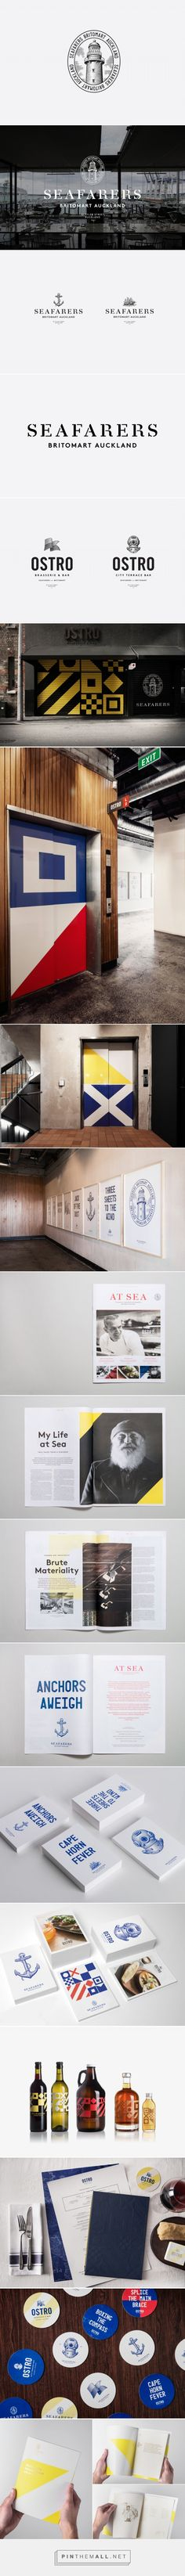 New Brand Identity for Seafarers by Inhouse - BP&O - created via http://pinthemall.net